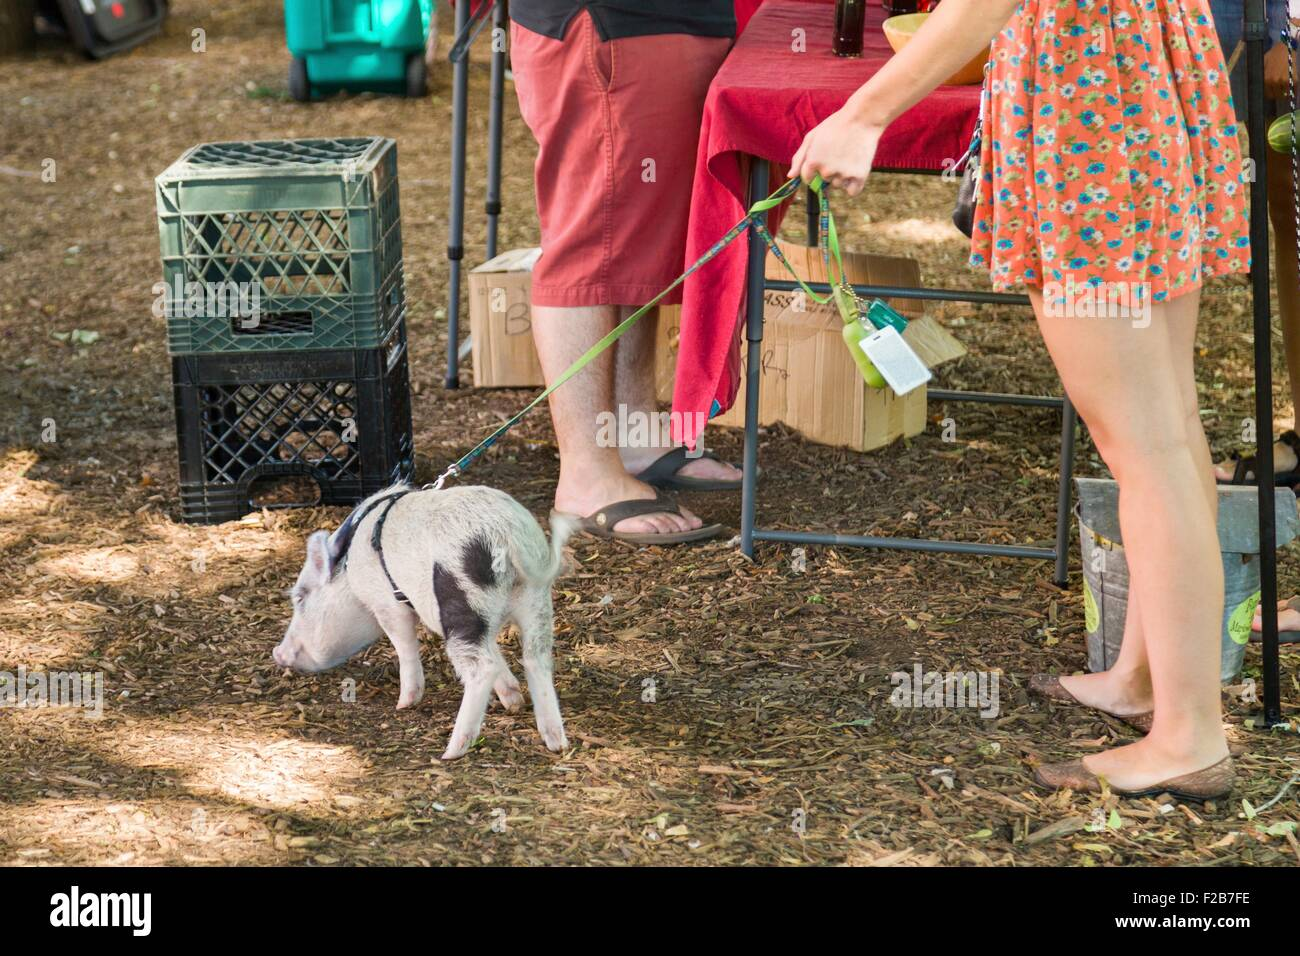 A young woman walks her Juliana teacup pet pig at a farmers